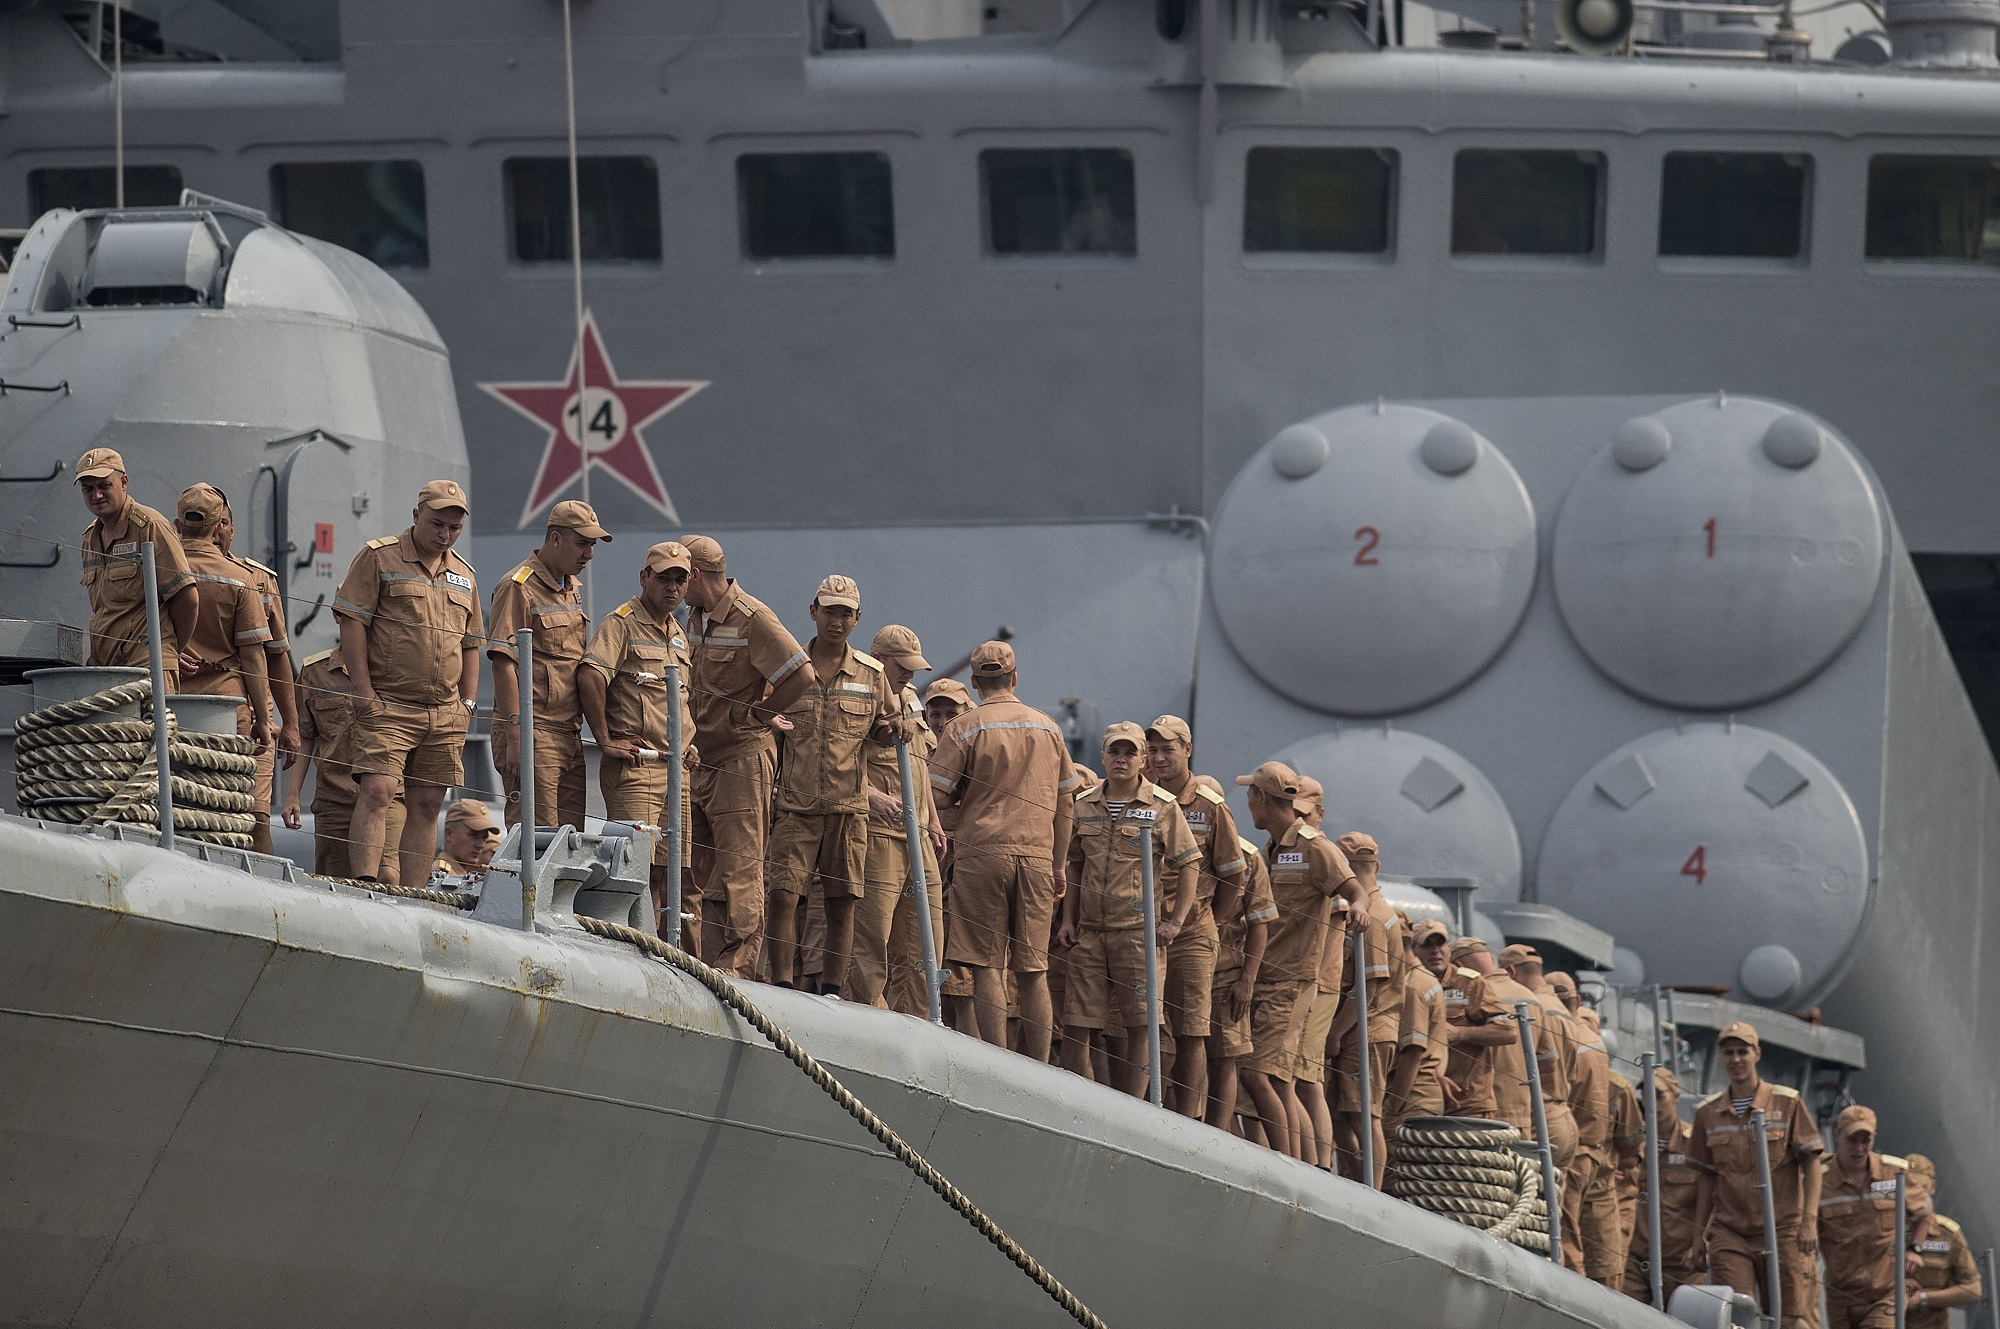 Russian sailors gather on the deck of the anti-submarine ship Admiral Vinogradov docked at the port of Manila in the Philippines on Oct. 20, 2017. (Noel Celis/AFP via Getty Images)